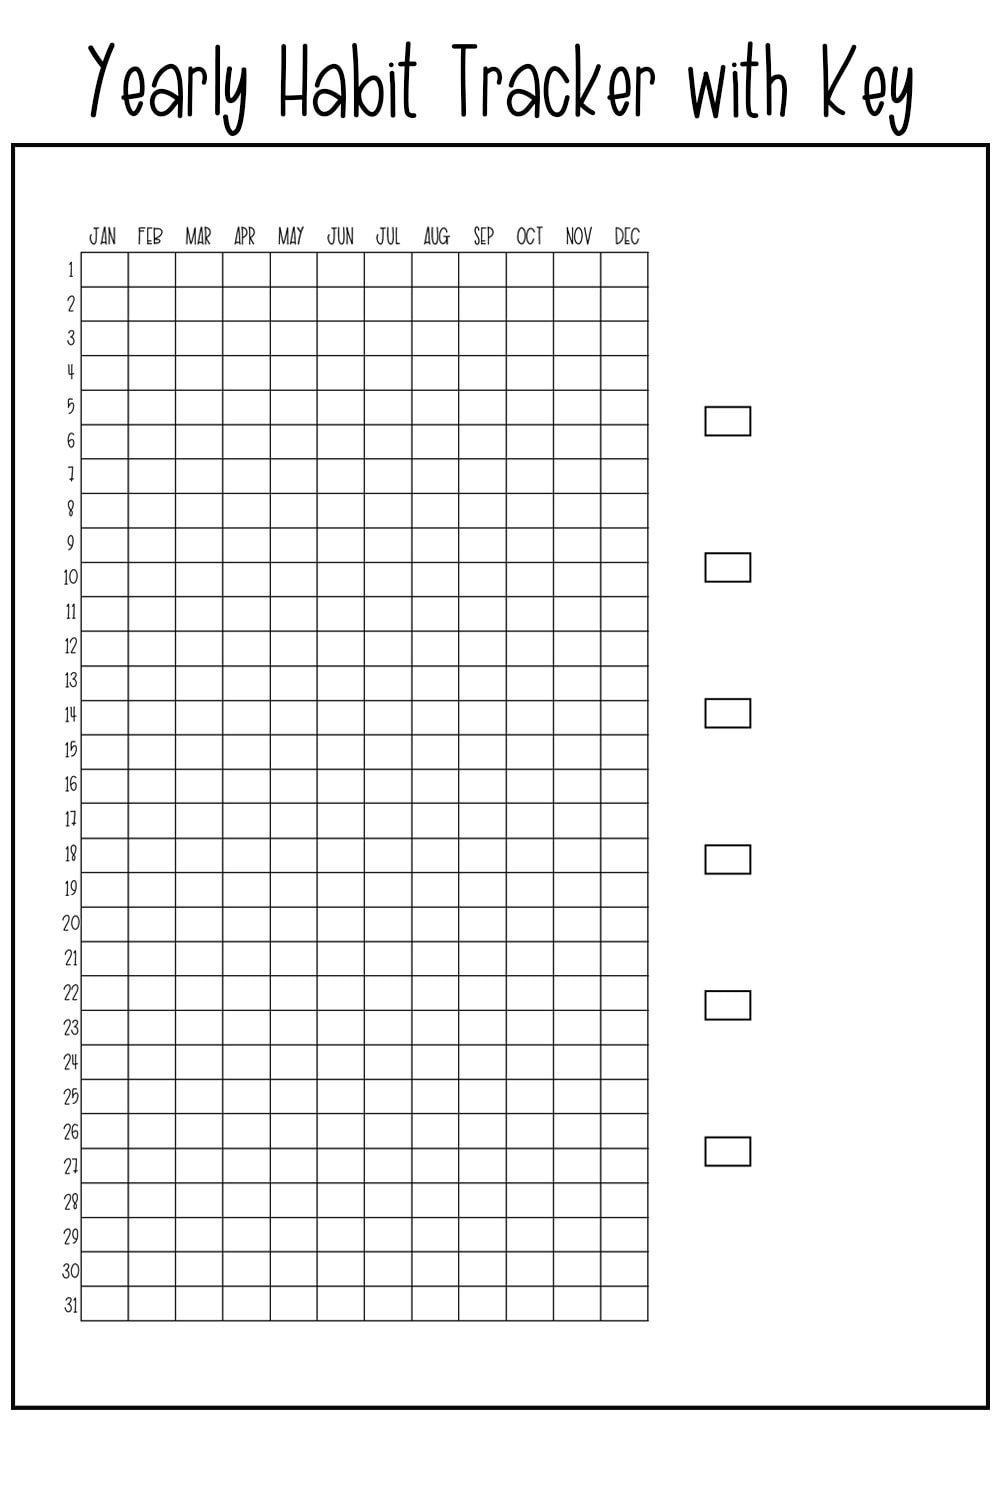 Picture of a yearly habit tracker with the days of the month running down the left side and the months at the top of the graph. There are five boxes to the right for a key.